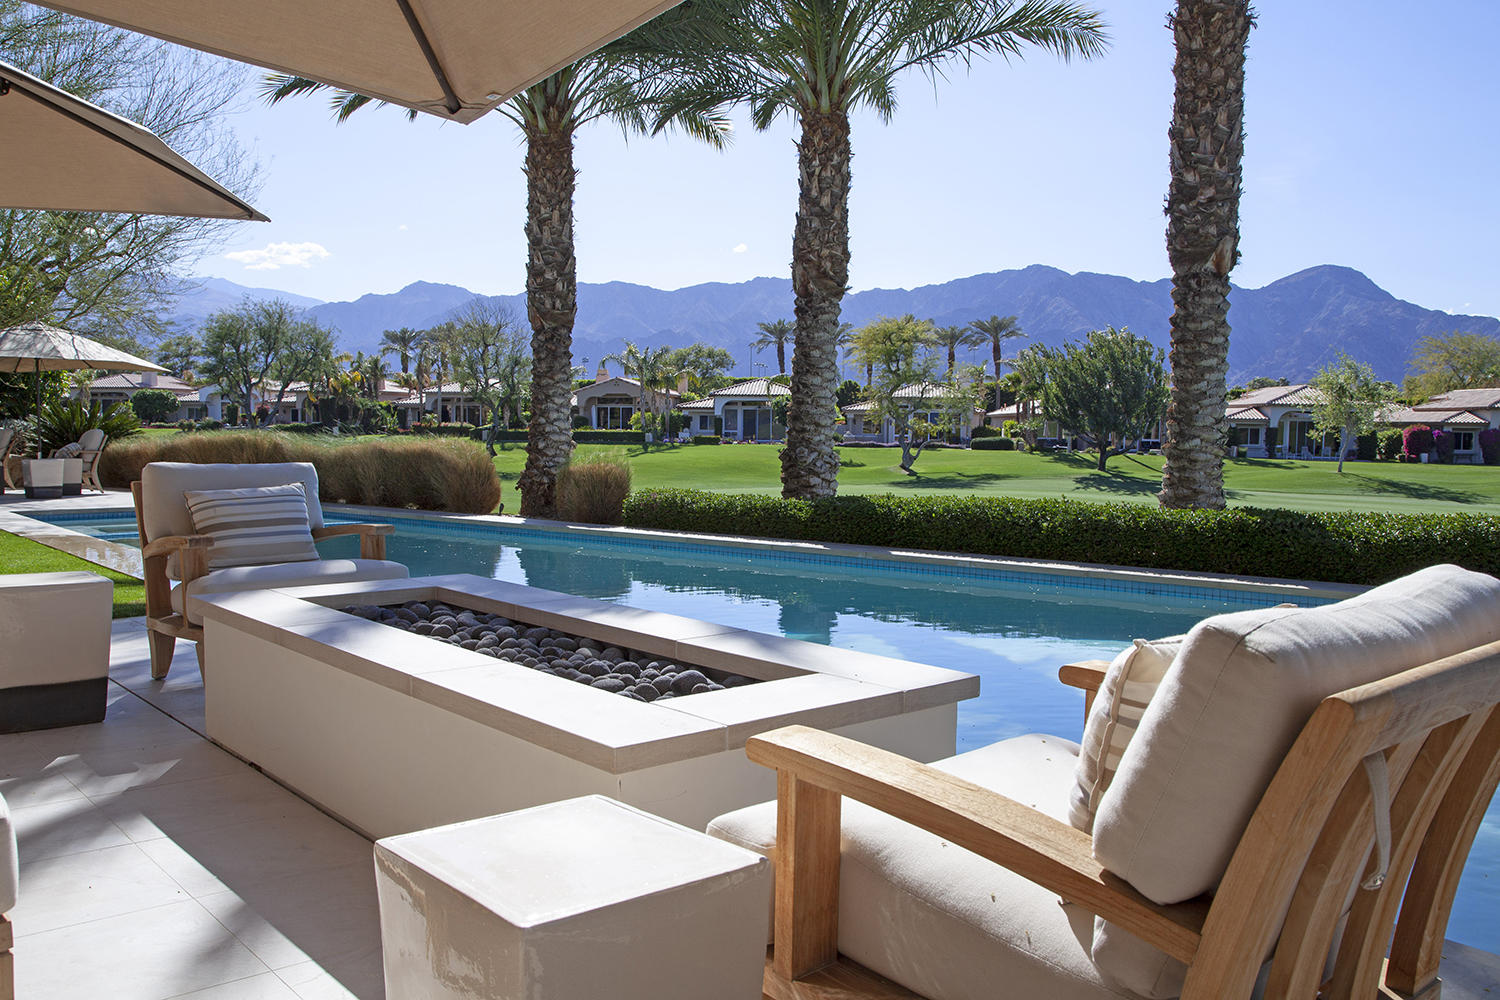 An extraordinary contemporary desert home uniquely positioned for maximum view. Dramatic views of the majestic Santa Rosa Mountain and rugged foothills. Highly elevated above water and the 14th fairway of the Robert Trent Jones Jr. Championship Golf Course. Placed at the apex of an intimate cul-de-sac. Sensational linear pool is perfect for entertaining your crowd or doing your laps. A chic Turkish limestone walkway welcomes all at the entrance. This limestone is also the perfect fit for pool side and patio. Elongated fire pit accommodates family and friends. The secondary patio is a wonderful relaxation zone. Large BBQ island with a wolf grill and seats all who like to hang with the chef. Enter the luxury attached guest casita via the homes private courtyard. Large side yard welcomes all four legged friends! This is an extraordinary and transformational remodel. Enter through translucent glass and wood entry doors. Polished travertine flooring. Impressive audio / video wall with high end electronics. Multi-panel sliding door collapses to a single pane for an immersive indoor / outdoor experience. Kitchen has been completely reimagined with features that include rift cut white oak, Sub Zero fridge, Wolf range, wine fridge, secondary fridge. Master bedroom retreat has a French door to the spa and barn door to the fabulous bath with its own outdoor garden shower. Furnished per Inventory List. 3-car garage.